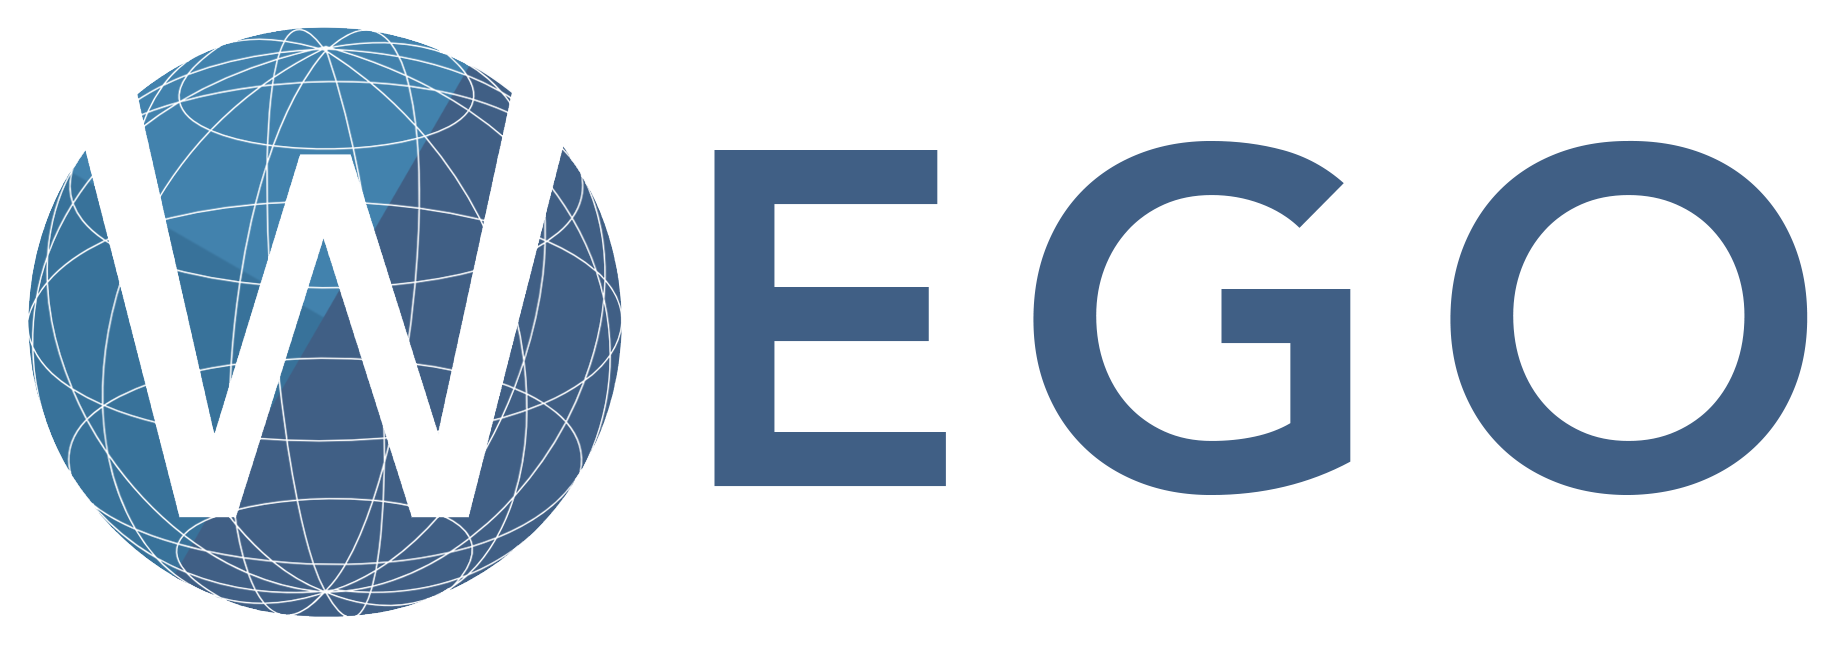 logo-Wego Chemical & Mineral Corp.